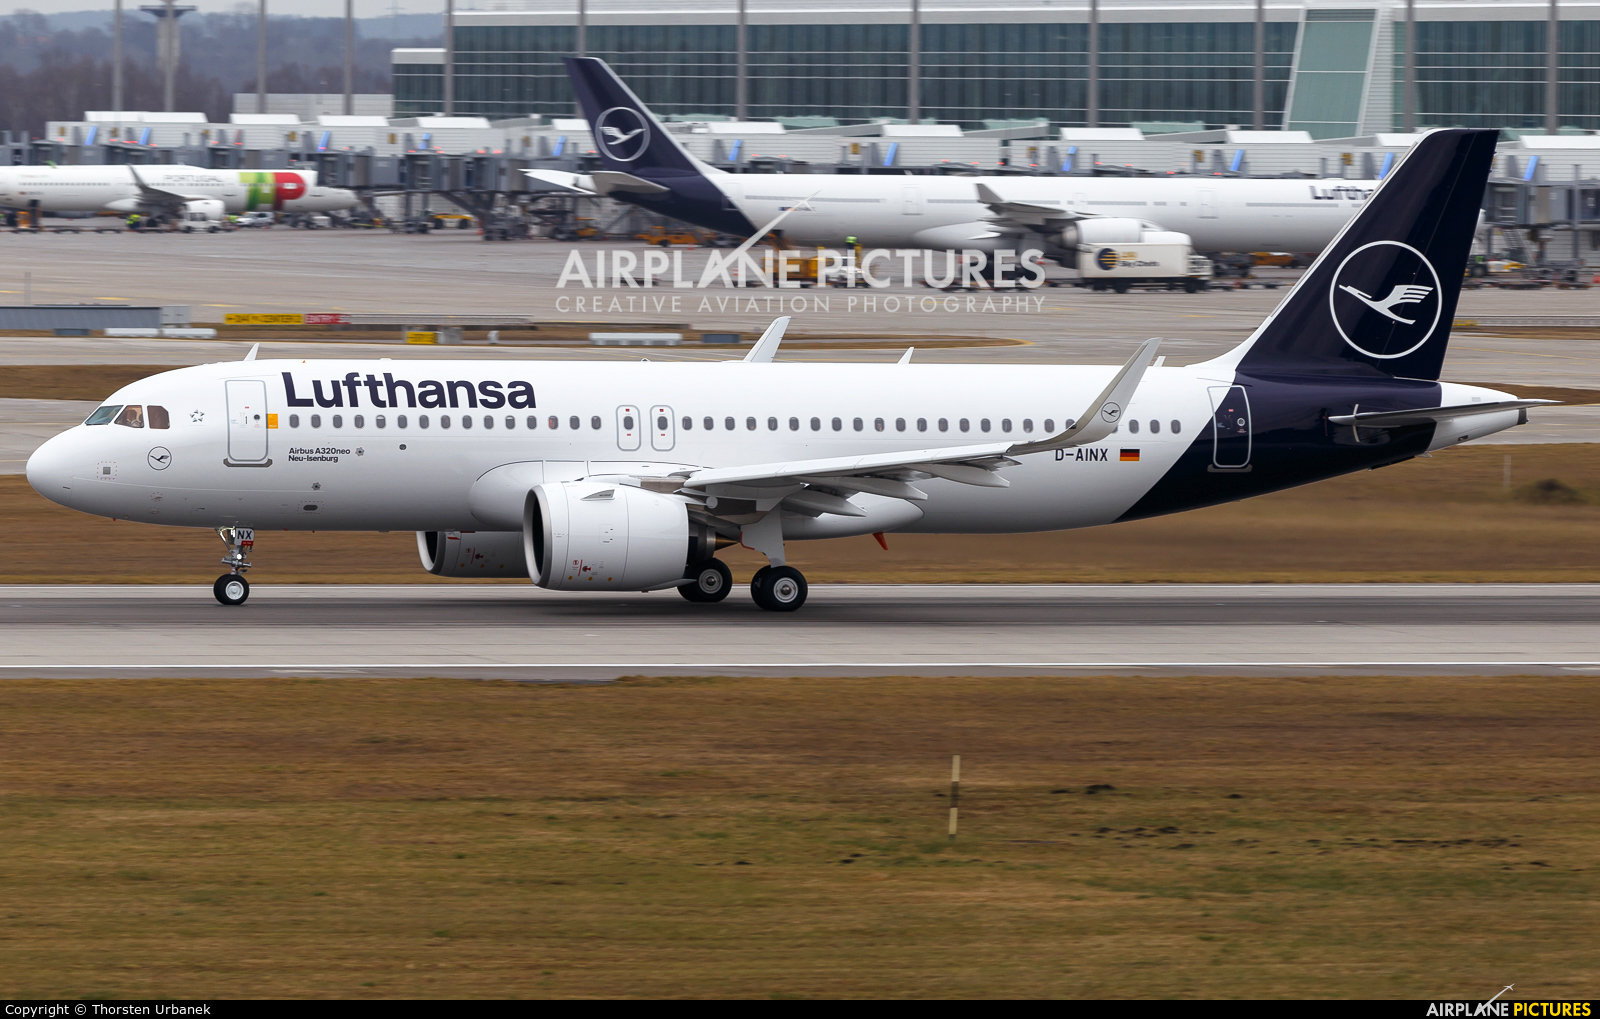 Lufthansa D-AINX aircraft at Munich